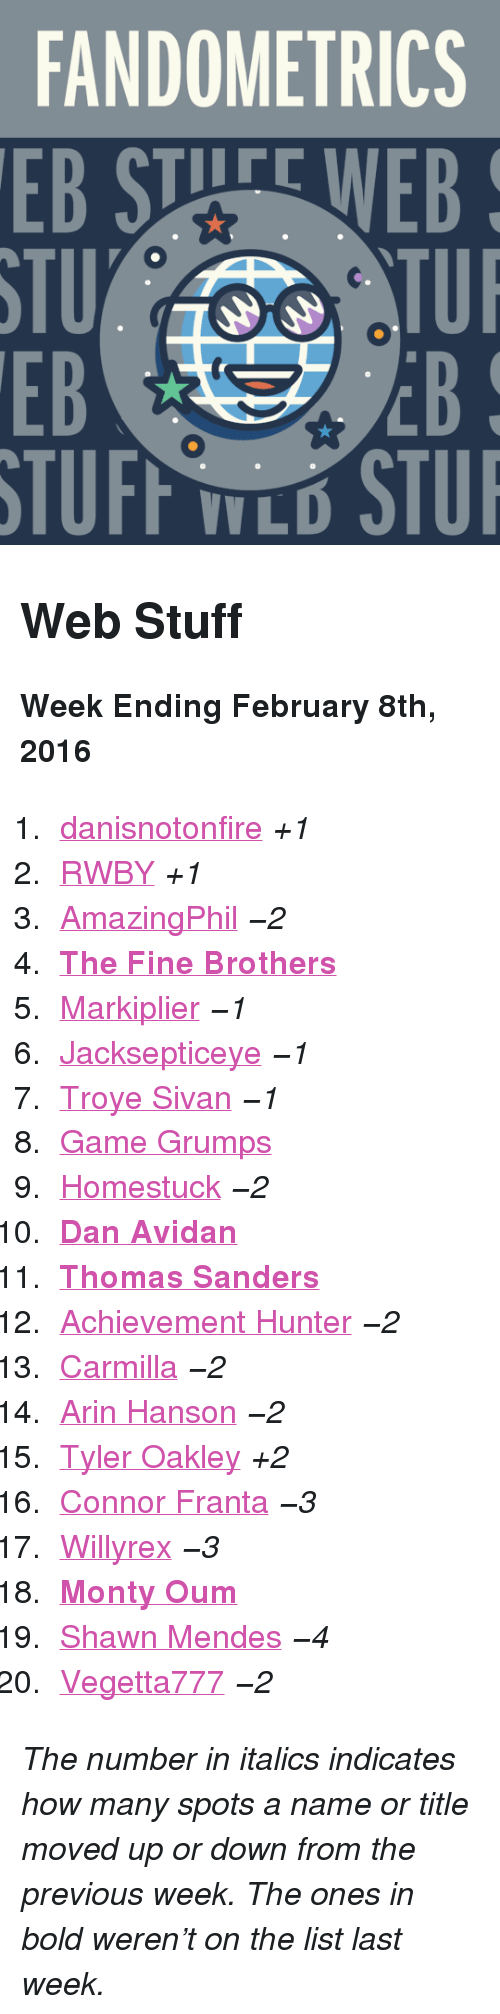 """Fine Brothers: FANDOMETRICS  EB STUFE WEB  STU  EB  TUI  EB  V L <h2>Web Stuff</h2><p><b>Week Ending February 8th, 2016</b></p><ol><li><a href=""""http://www.tumblr.com/search/danisnotonfire"""">danisnotonfire</a><i>+1</i></li>  <li><a href=""""http://www.tumblr.com/search/rwby"""">RWBY</a><i>+1</i></li>  <li><a href=""""http://www.tumblr.com/search/amazingphil"""">AmazingPhil</a><i><i><i>−2</i></i></i></li>  <li><a href=""""http://www.tumblr.com/search/fine%20bros""""><b>The Fine Brothers</b></a></li>  <li><a href=""""http://www.tumblr.com/search/markiplier"""">Markiplier</a><i><i><i>−1</i></i></i></li>  <li><a href=""""http://www.tumblr.com/search/jacksepticeye"""">Jacksepticeye</a><i><i><i>−1</i></i></i></li>  <li><a href=""""http://www.tumblr.com/search/troye%20sivan"""">Troye Sivan</a><i><i><i>−1</i></i></i></li>  <li><a href=""""http://www.tumblr.com/search/game%20grumps"""">Game Grumps</a></li>  <li><a href=""""http://www.tumblr.com/search/homestuck"""">Homestuck</a><i><i><i>−2</i></i></i></li>  <li><a href=""""http://www.tumblr.com/search/dan%20avidan""""><b>Dan Avidan</b></a></li>  <li><a href=""""http://www.tumblr.com/search/thomas%20sanders""""><b>Thomas Sanders</b></a></li>  <li><a href=""""http://www.tumblr.com/search/achievement%20hunter"""">Achievement Hunter</a><i><i><i>−2</i></i></i></li>  <li><a href=""""http://www.tumblr.com/search/carmilla"""">Carmilla</a><i><i><i>−2</i></i></i></li>  <li><a href=""""http://www.tumblr.com/search/arin%20hanson"""">Arin Hanson</a><i><i><i>−2</i></i></i></li>  <li><a href=""""http://www.tumblr.com/search/tyler%20oakley"""">Tyler Oakley</a><i>+2</i></li>  <li><a href=""""http://www.tumblr.com/search/connor%20franta"""">Connor Franta</a><i><i><i>−3</i></i></i></li>  <li><a href=""""http://www.tumblr.com/search/willyrex"""">Willyrex</a><i><i><i>−3</i></i></i></li>  <li><a href=""""http://www.tumblr.com/search/monty%20oum""""><b>Monty Oum</b></a></li>  <li><a href=""""http://www.tumblr.com/search/shawn%20mendes"""">Shawn Mendes</a><i><i><i>−4</i></i></i></li>  <li><a href=""""http://www.tumblr.com/search/vegetta777"""">Vegetta777</a><i><"""